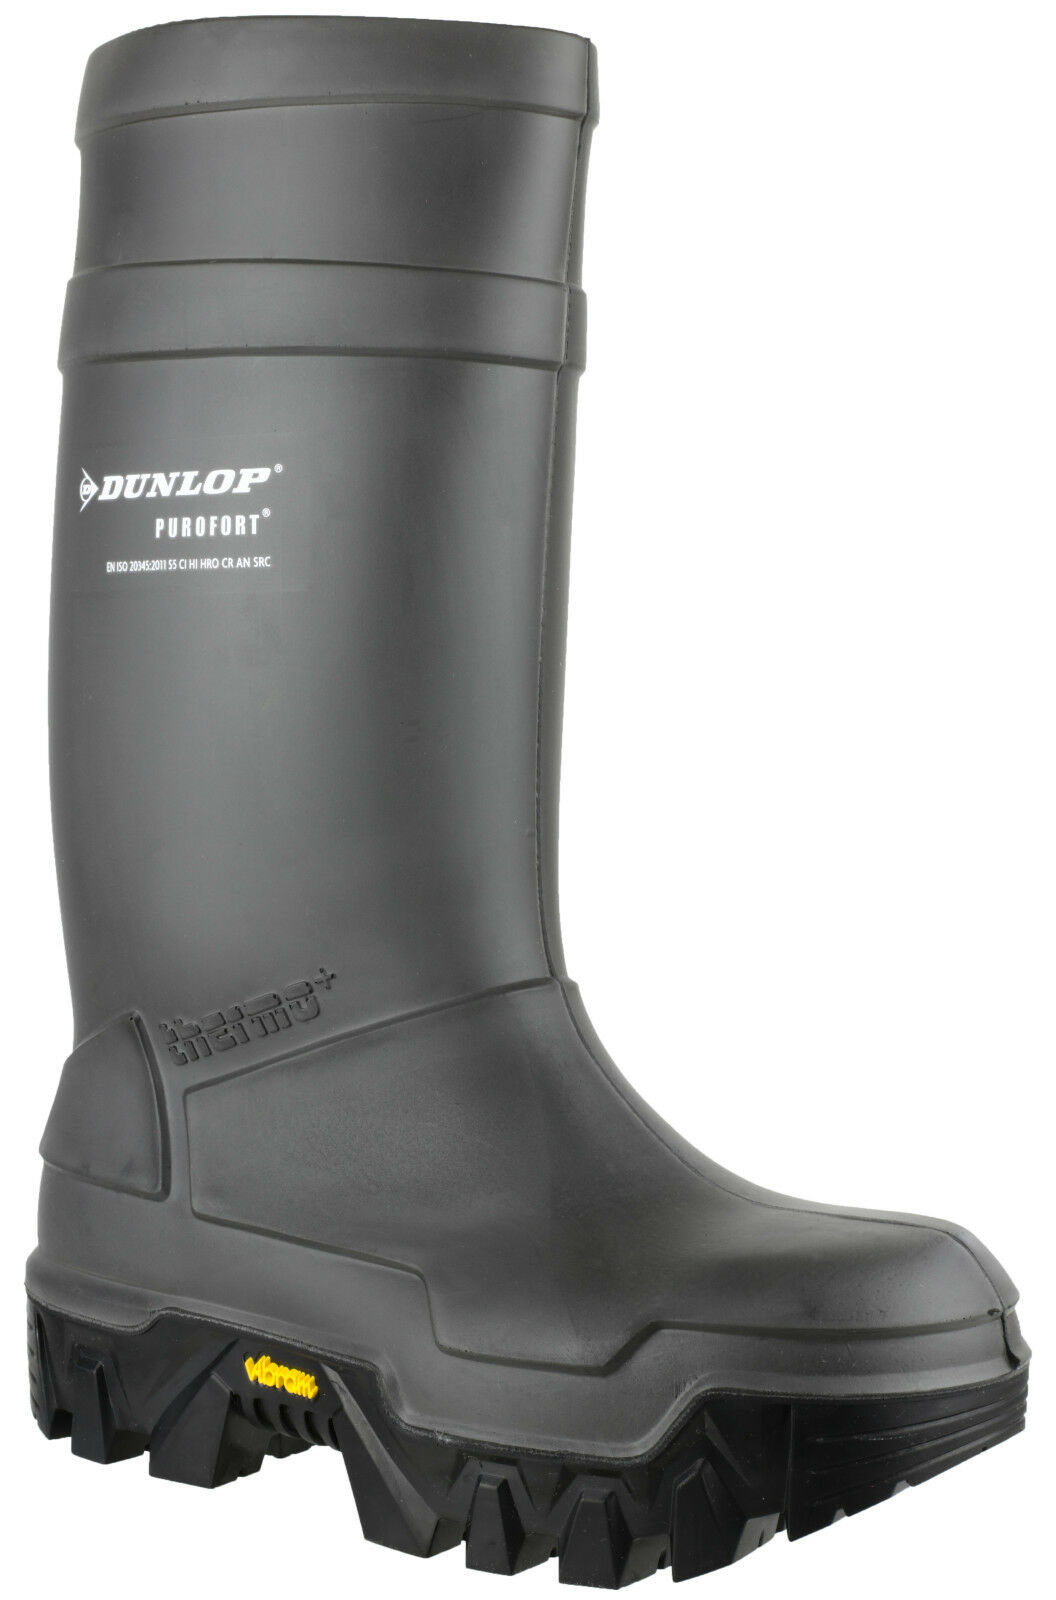 Dunlop Purofort Explorer Unisex Impermeable Wellington UK5-12 lleno de seguridad